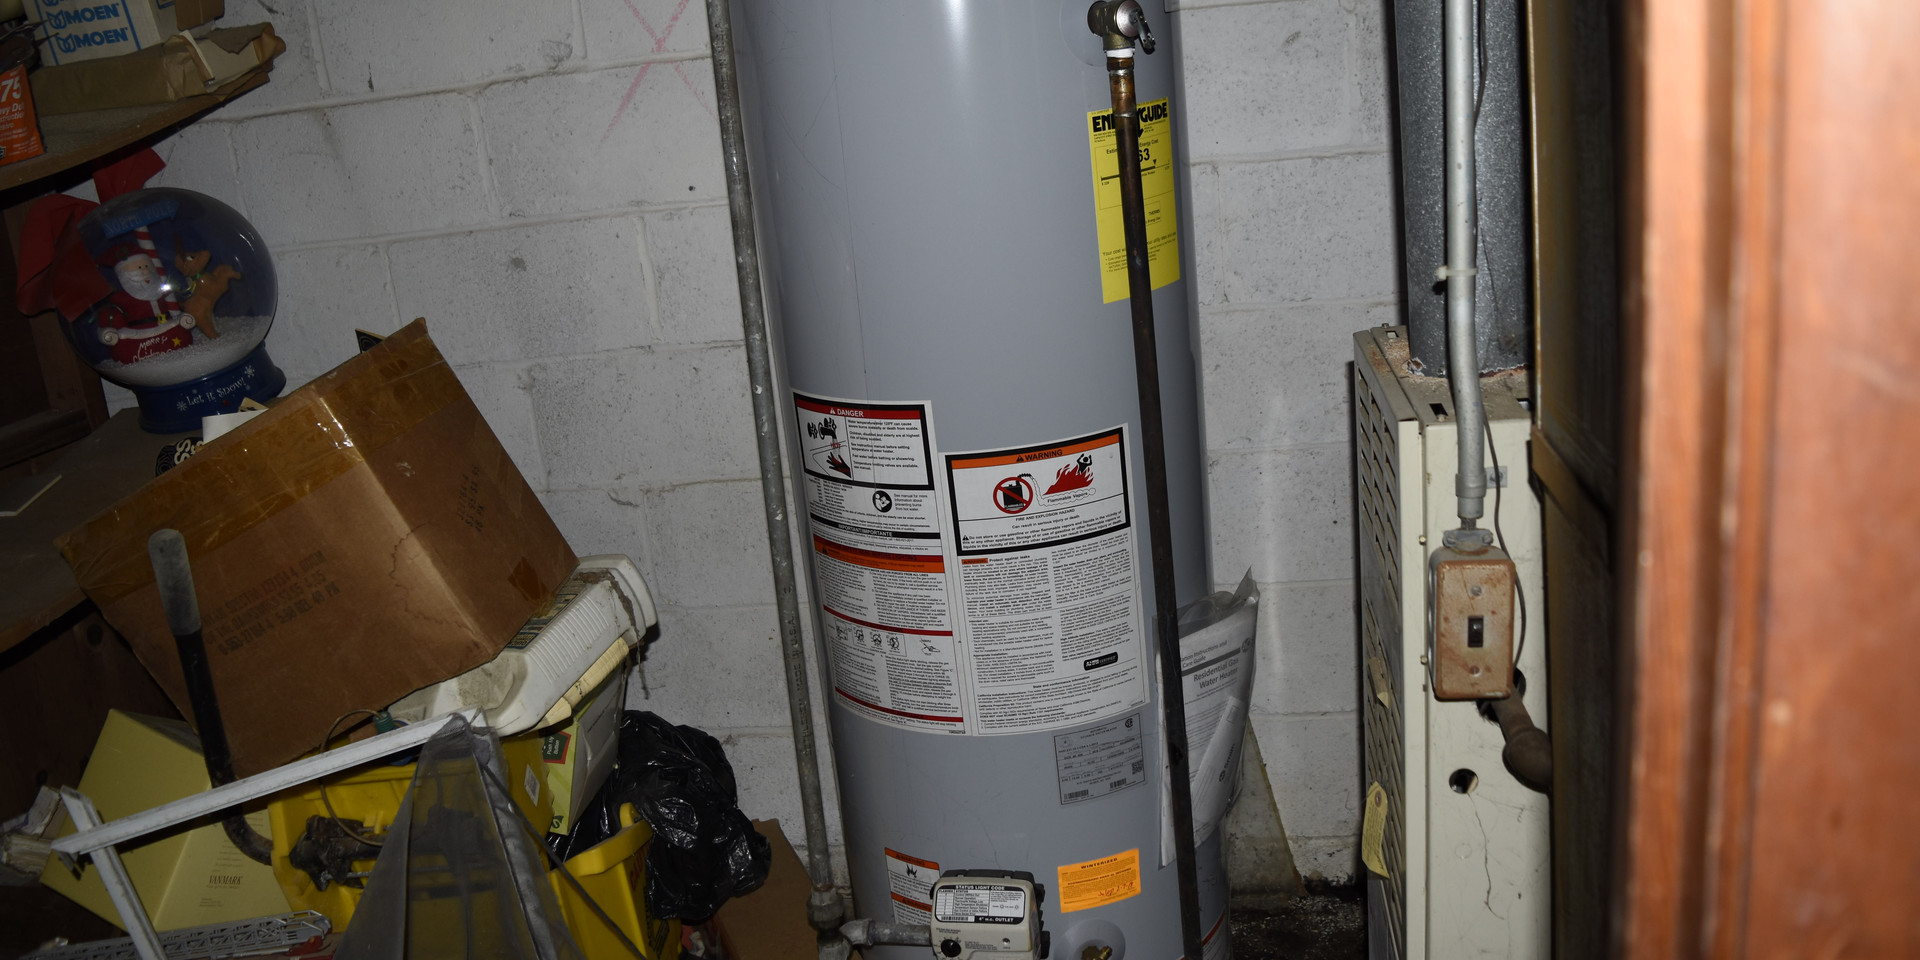 11.0 Hot Water Heater.JPG